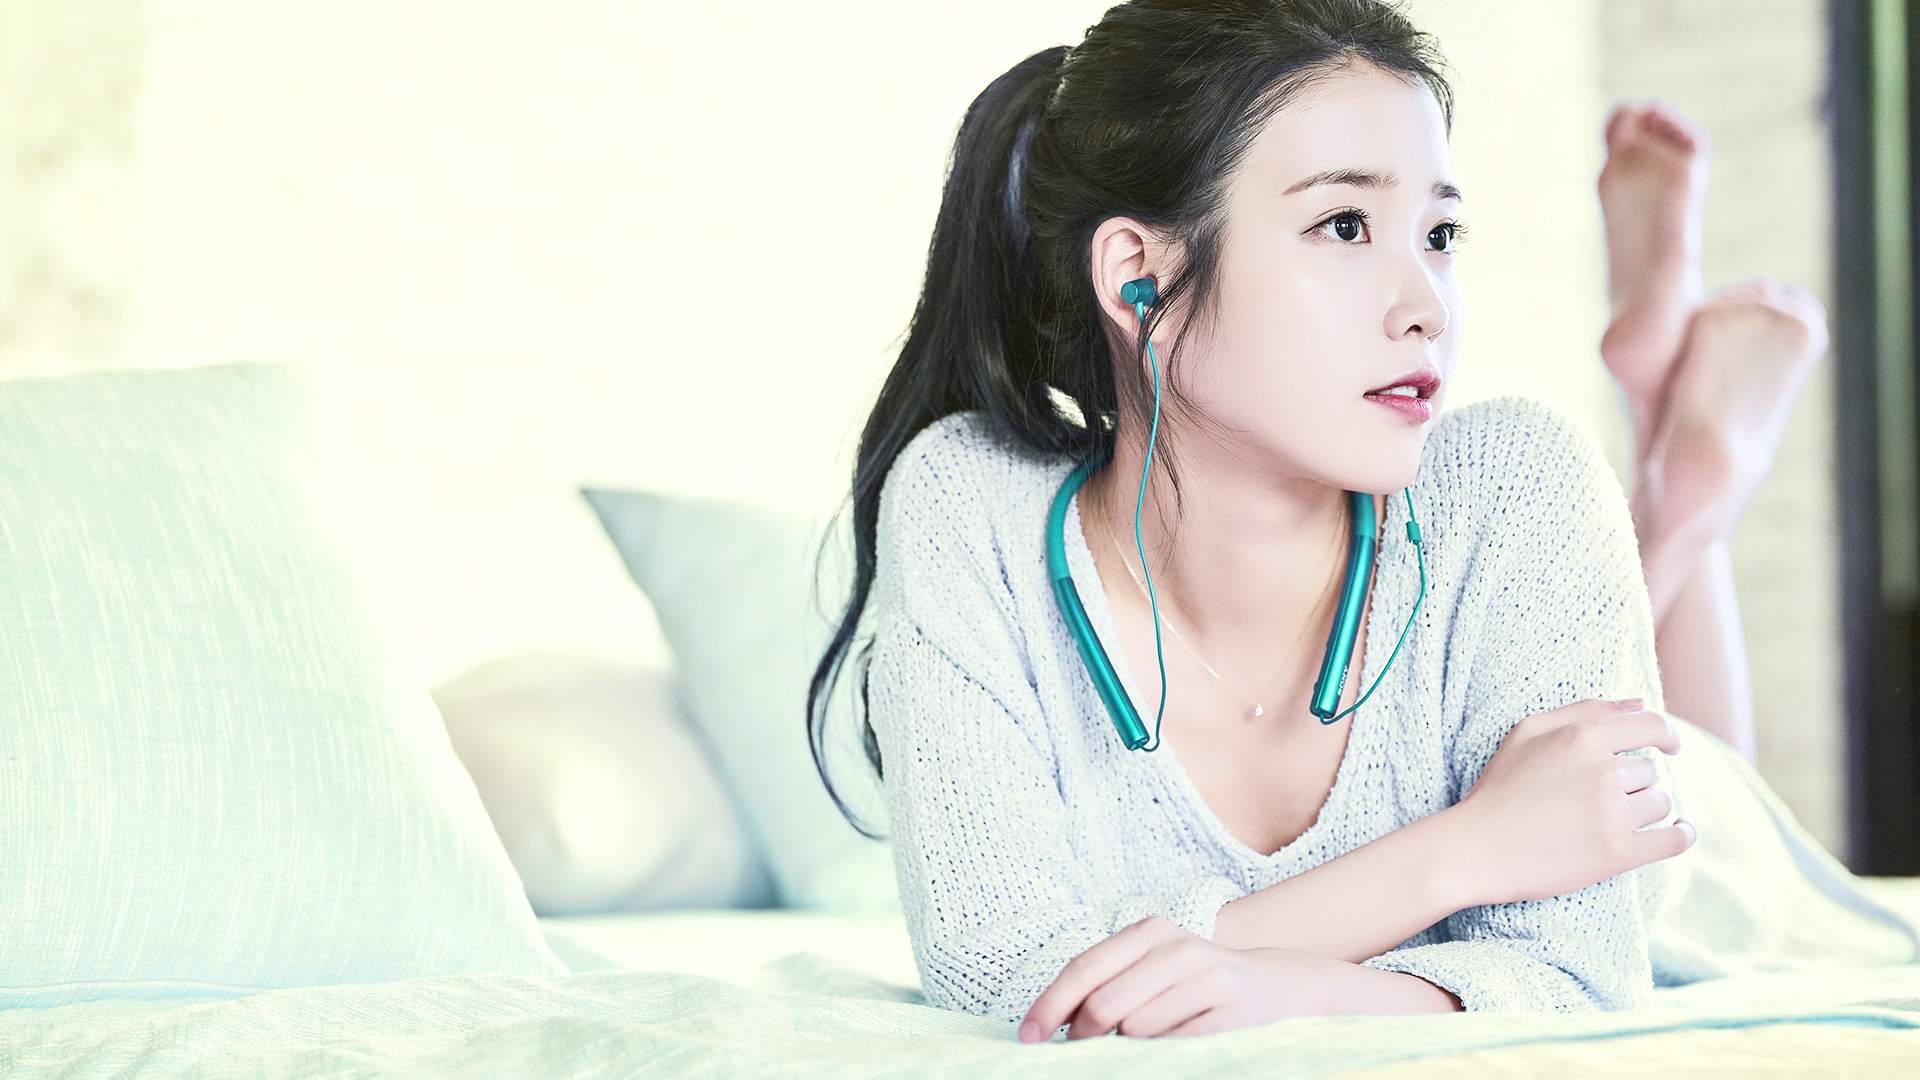 iu sony wallpapers by iumushimushi 1920x1080 iu